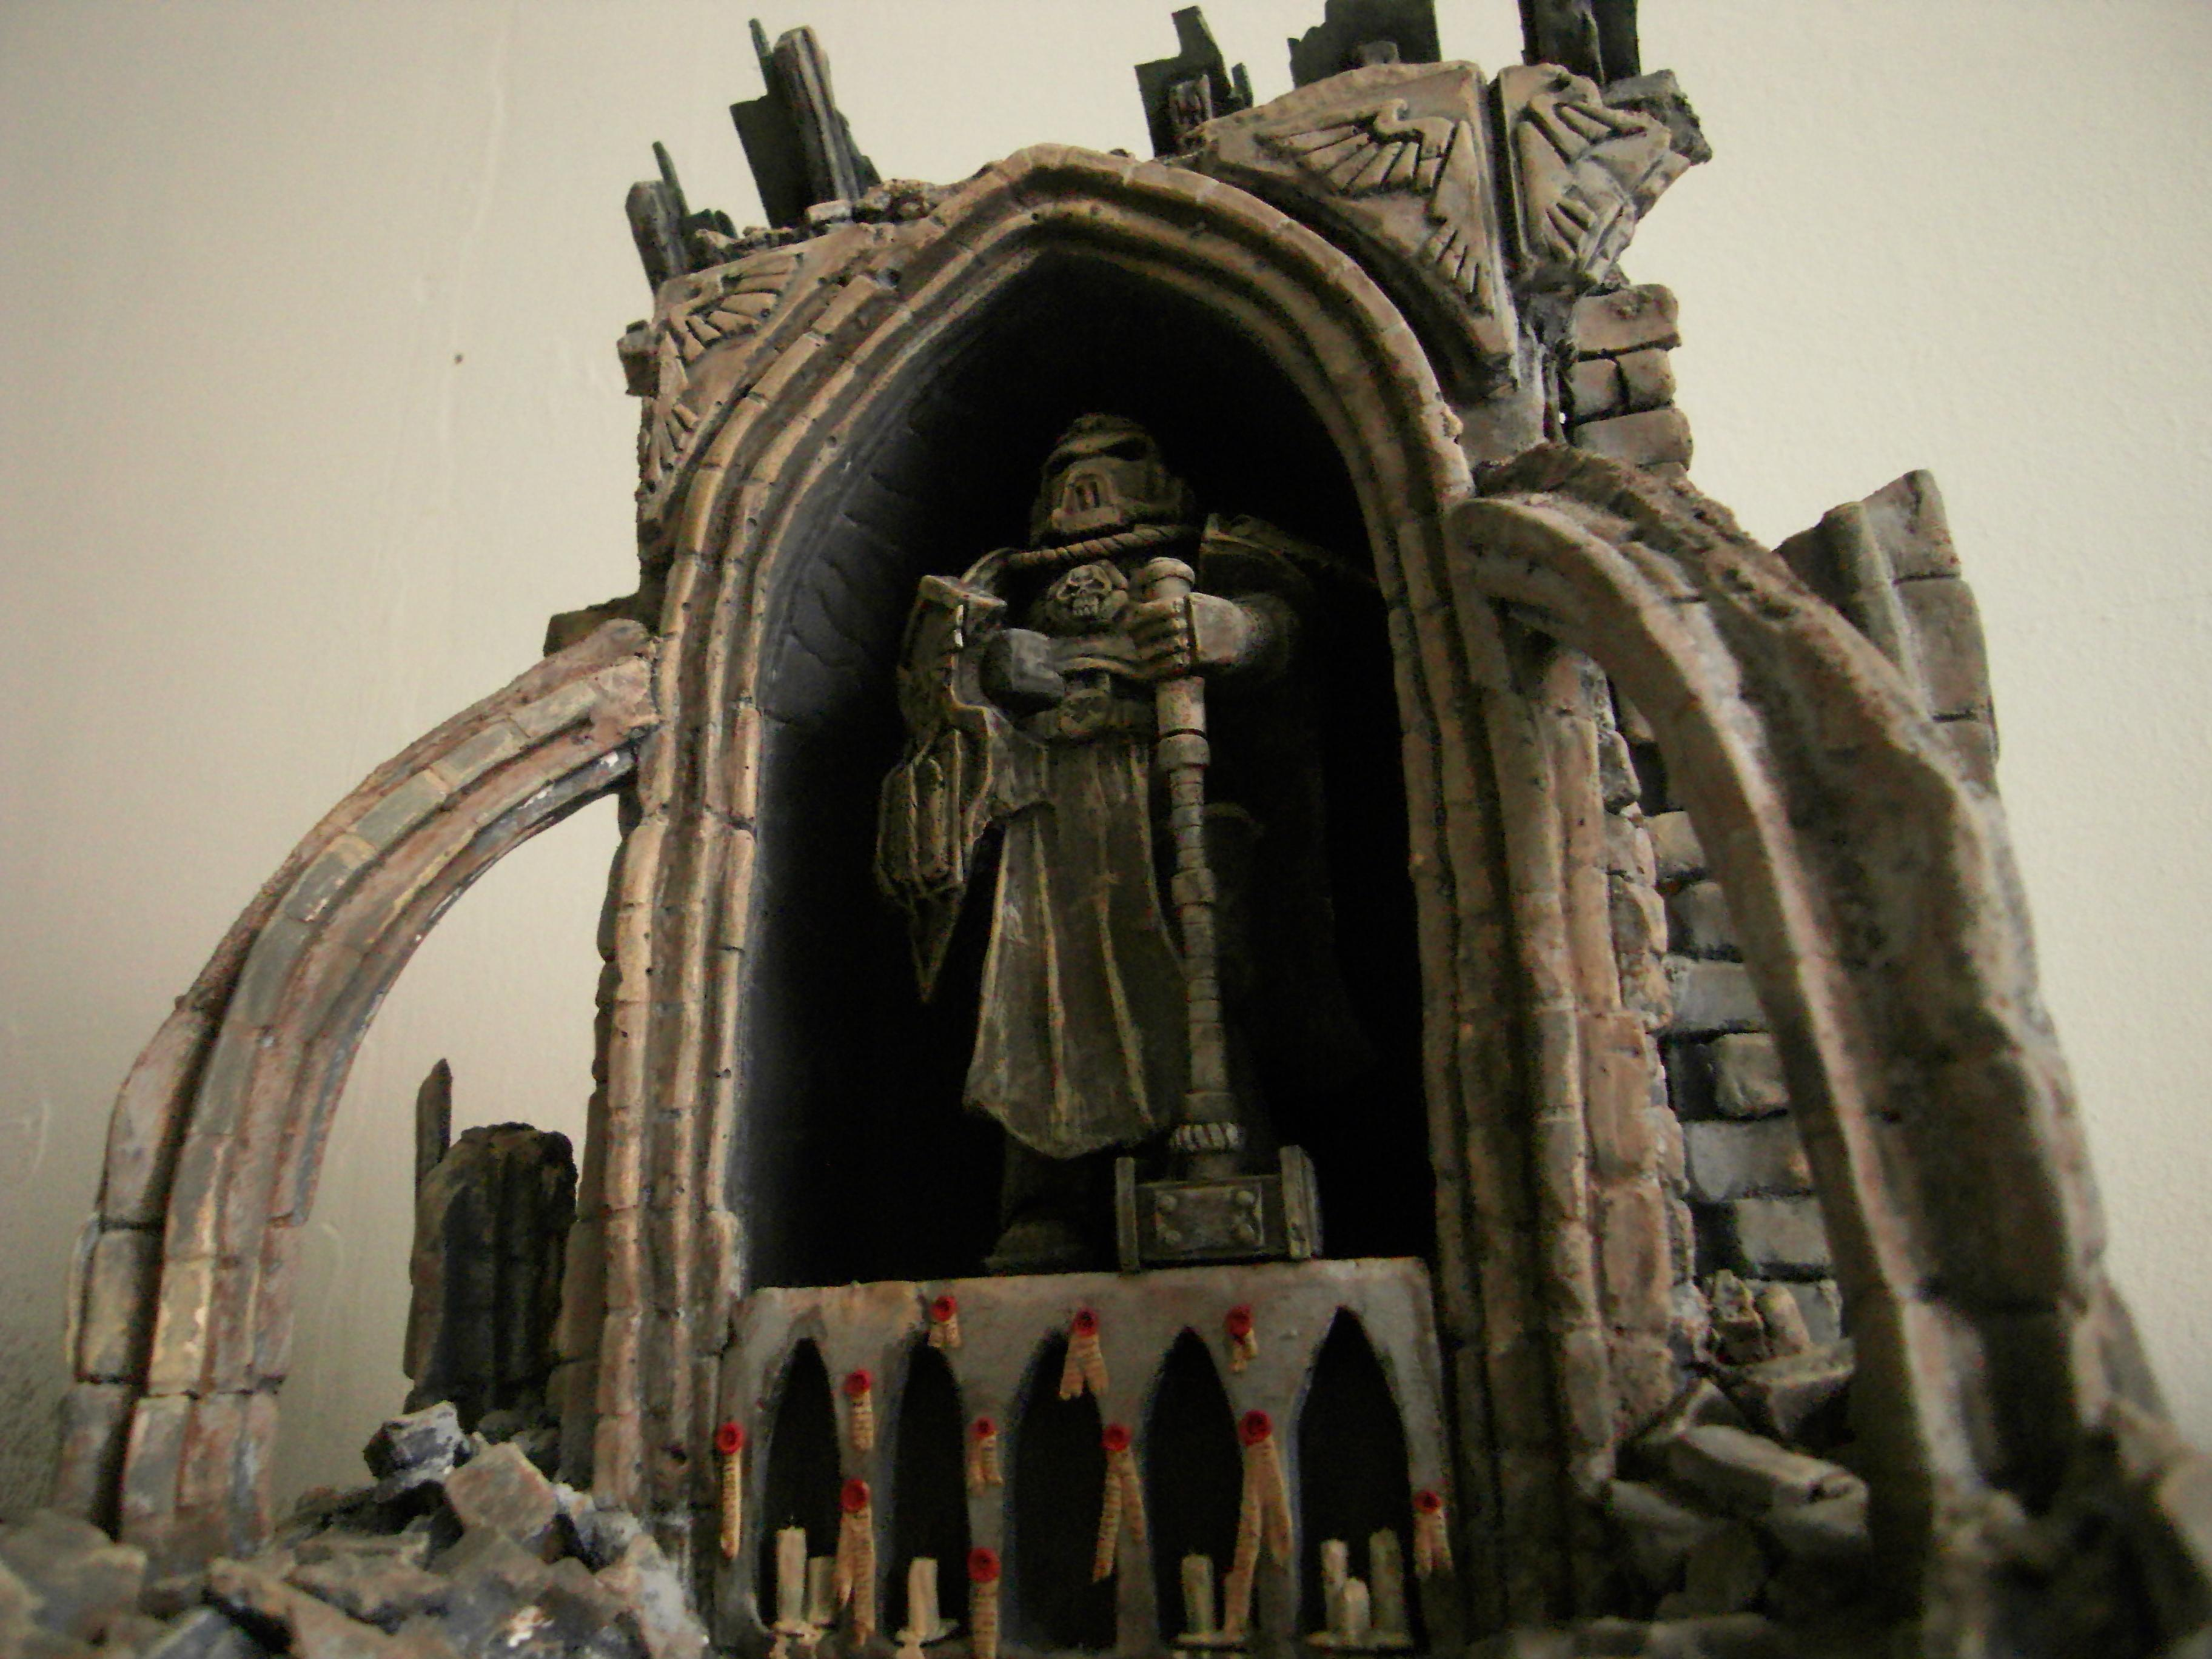 Cathedral, Ruin, Shrine, Space Marines, Statue, Terrain, Warhammer 40,000, Warhammer Fantasy